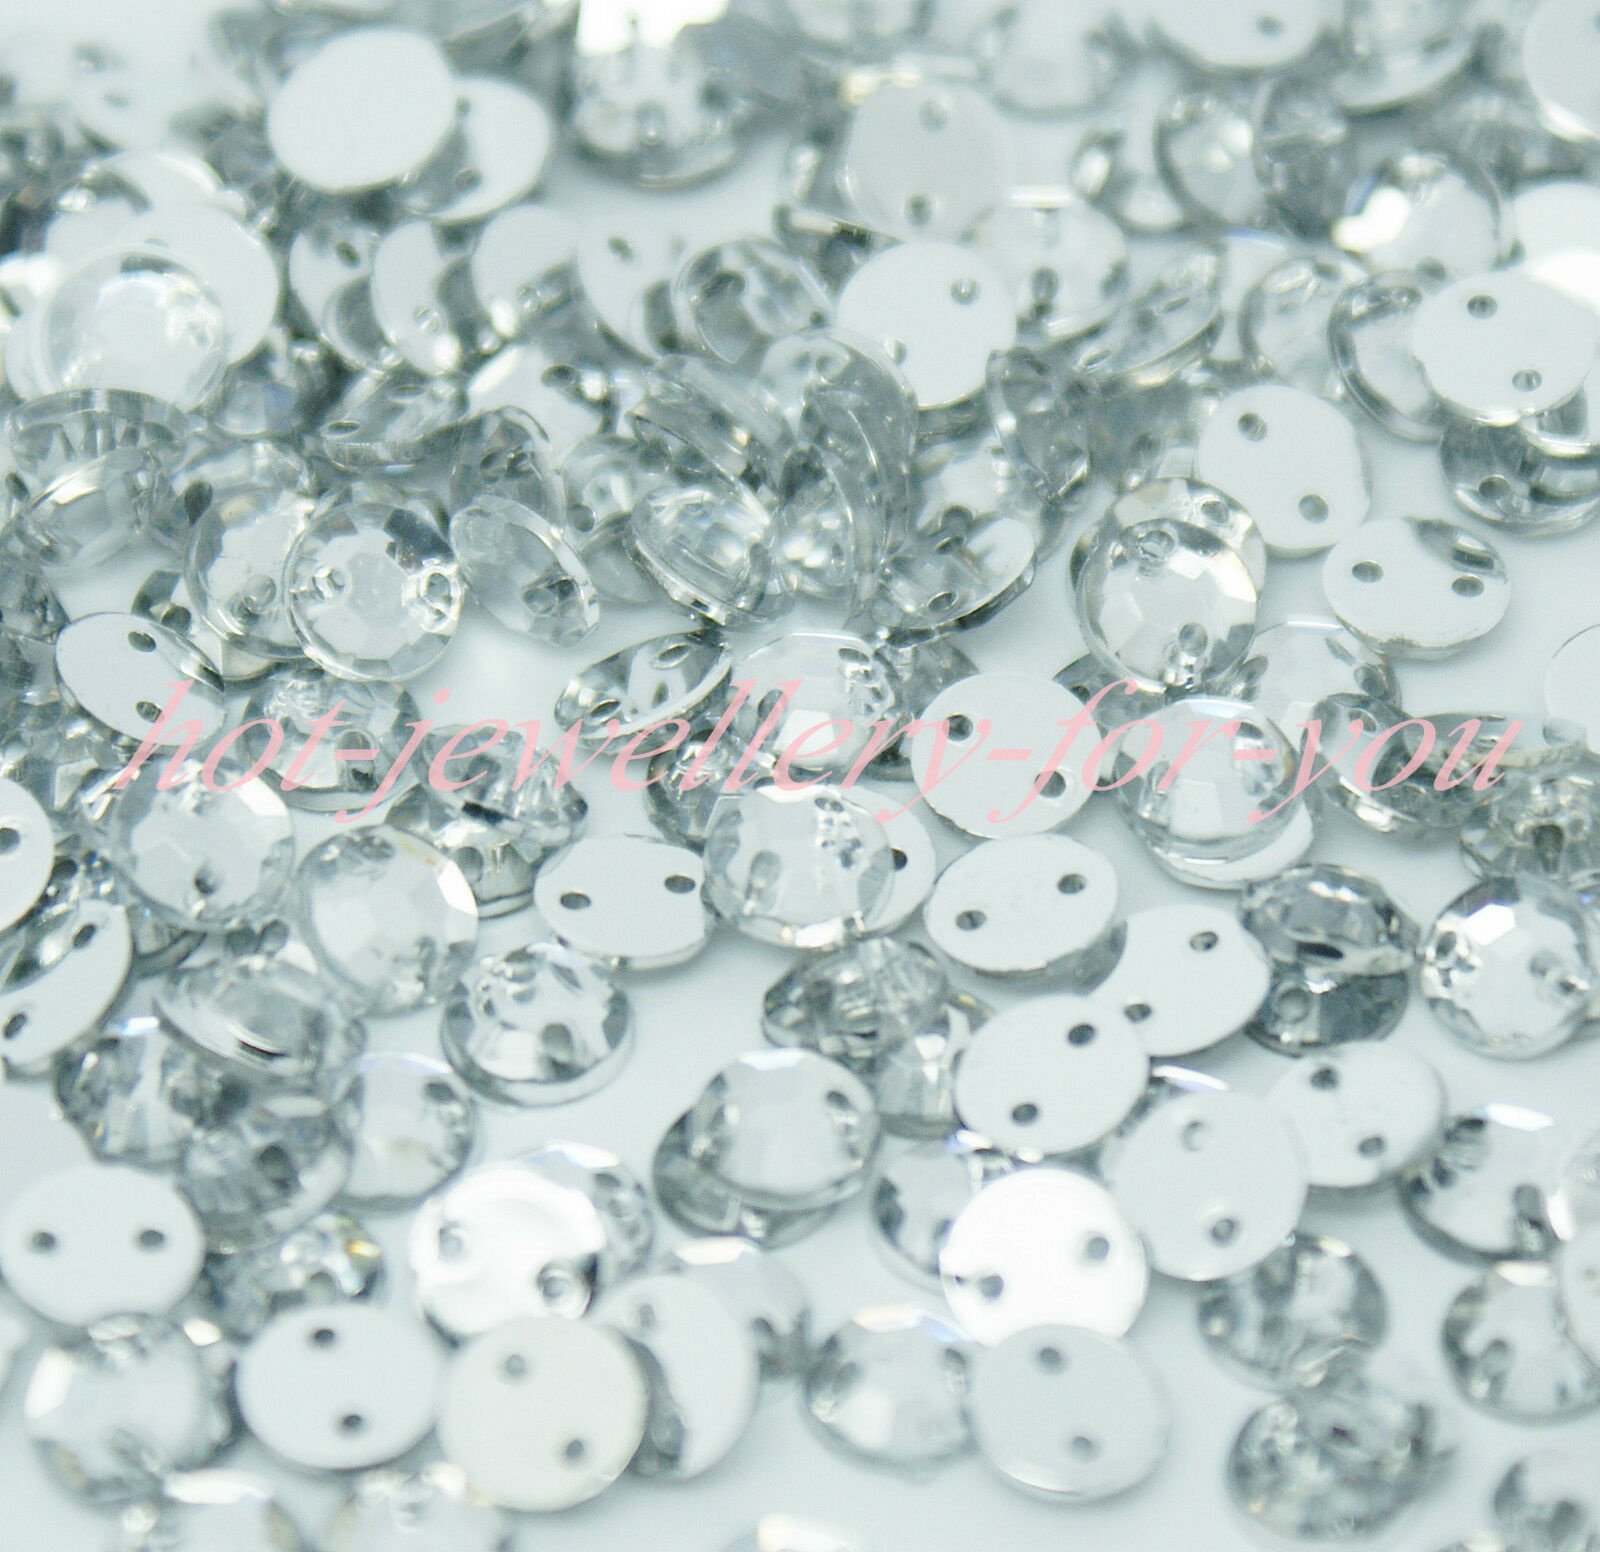 5000 Clear Flatback Acrylic Sewing Round Rhinestone Gems 5mm Sew on beads